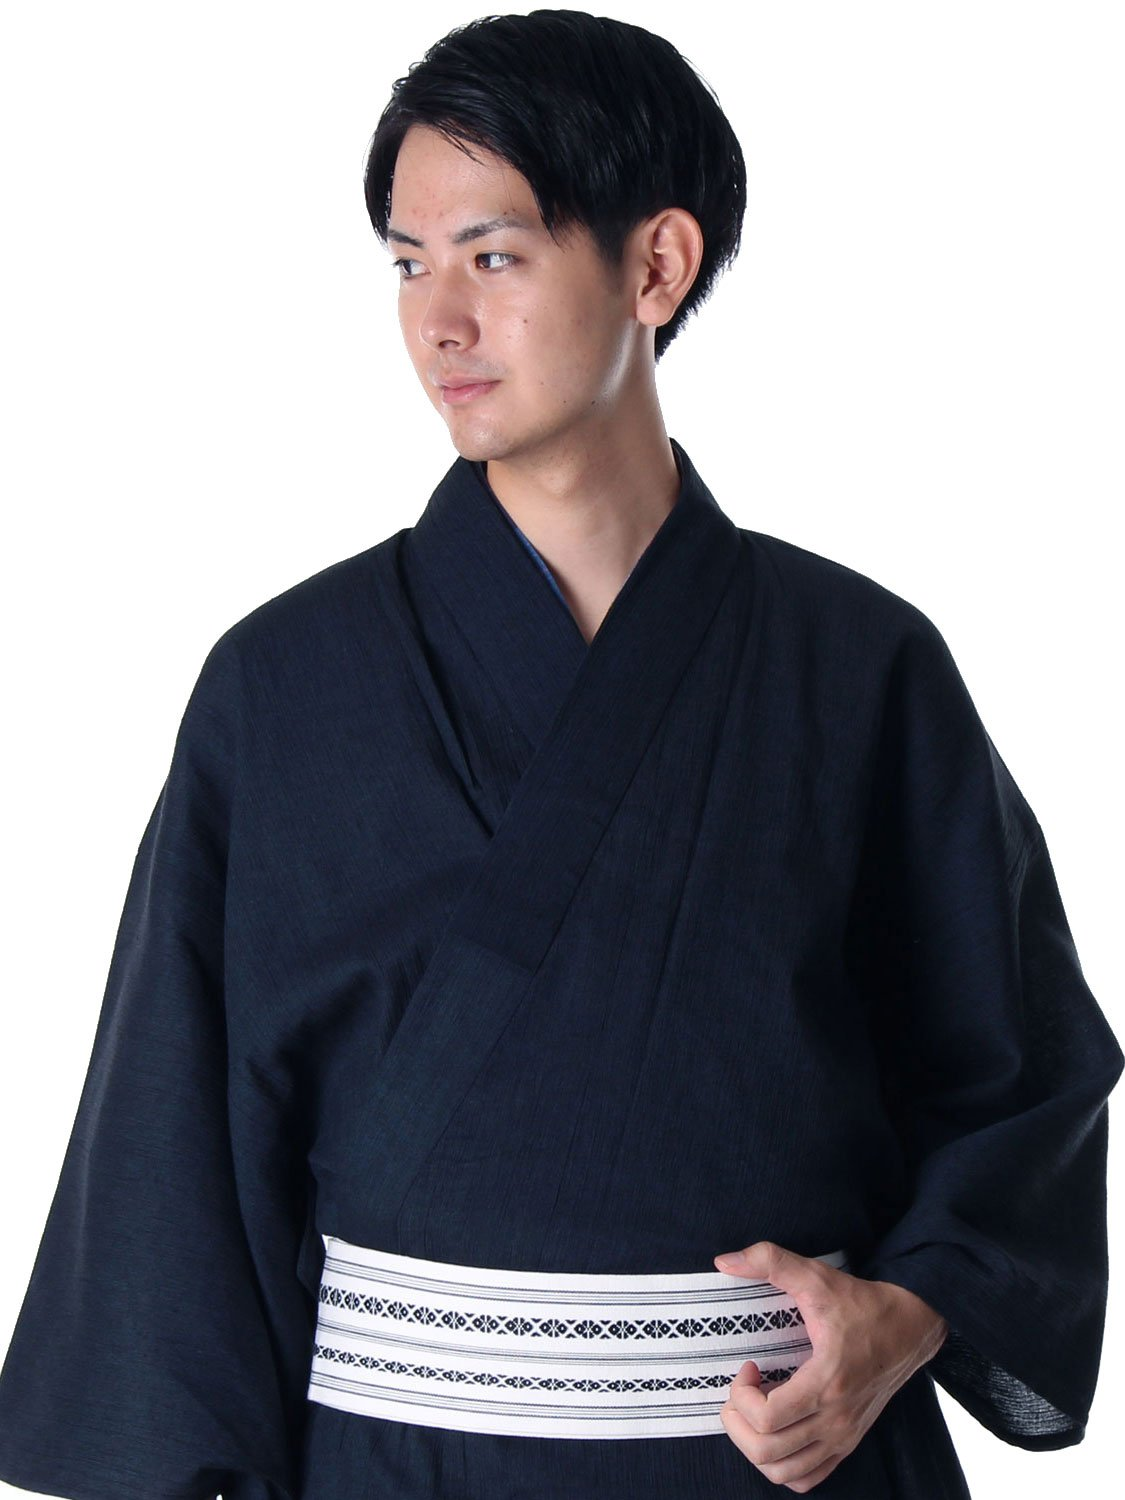 Kato Kyoto Men's Japanese Yukata Set with Obi,Geta and An original full-color instructional booklet in English Yoryu Large Dark Blue